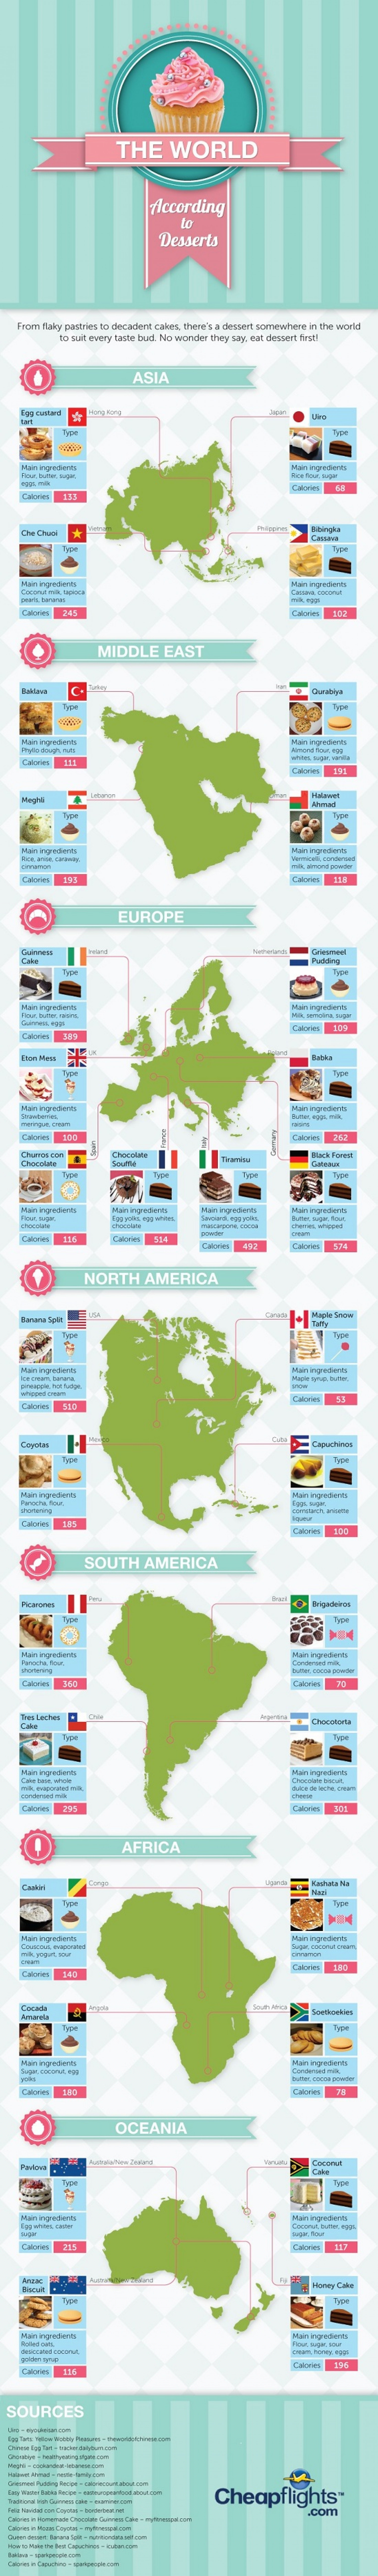 The World According To Desserts Infographic